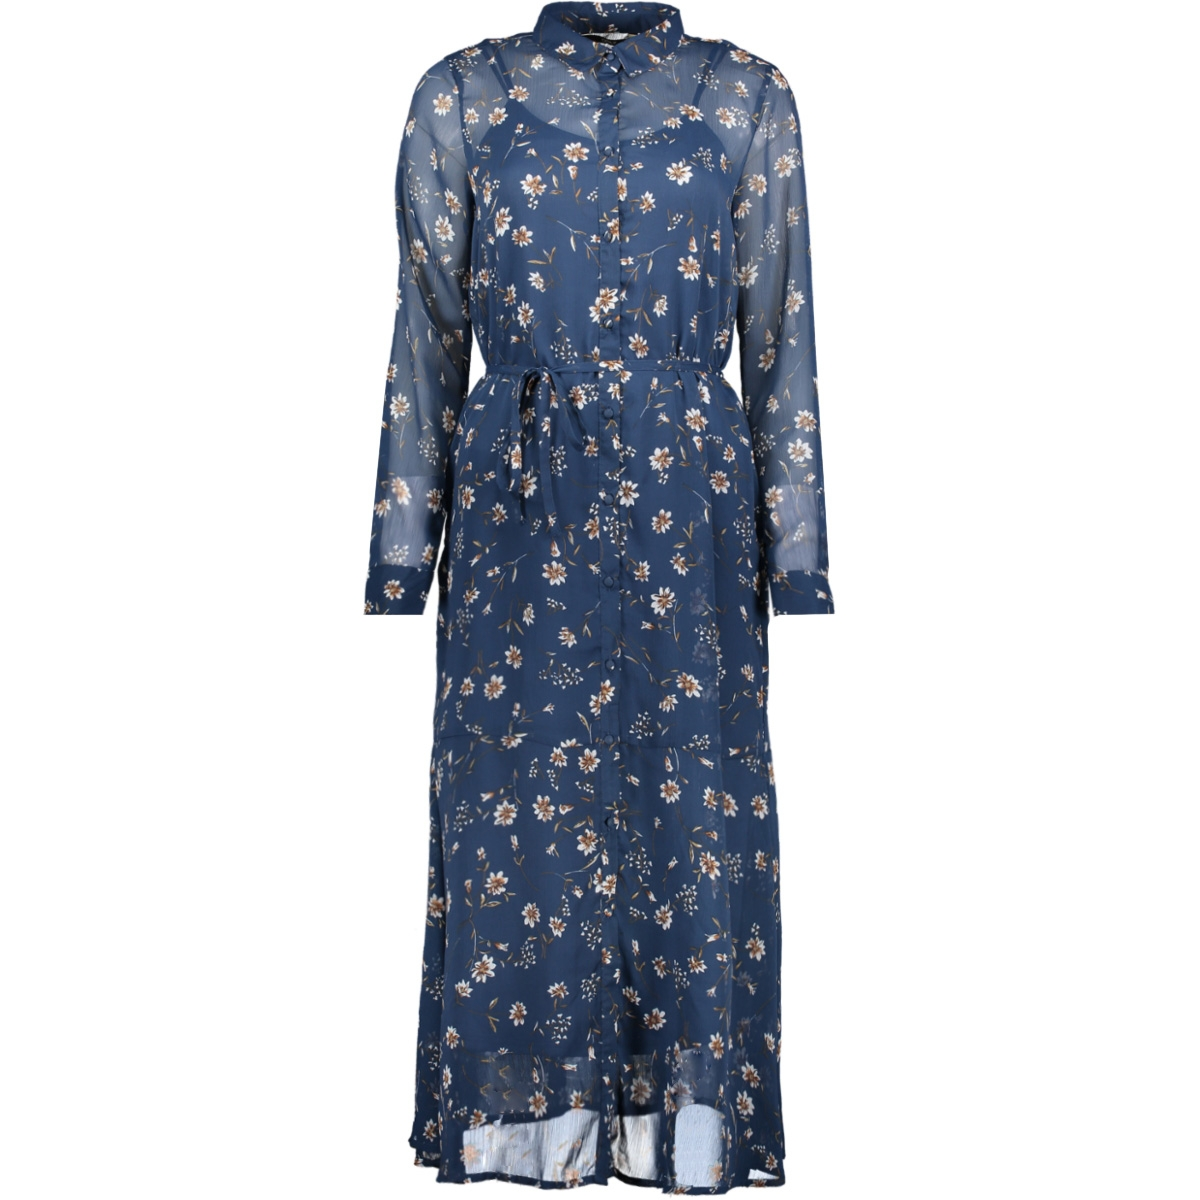 Bloemen Maxi Jurk.Onlsheena Maxi Dress Wvn 15176515 Only Jurk Insignia Blue Flower